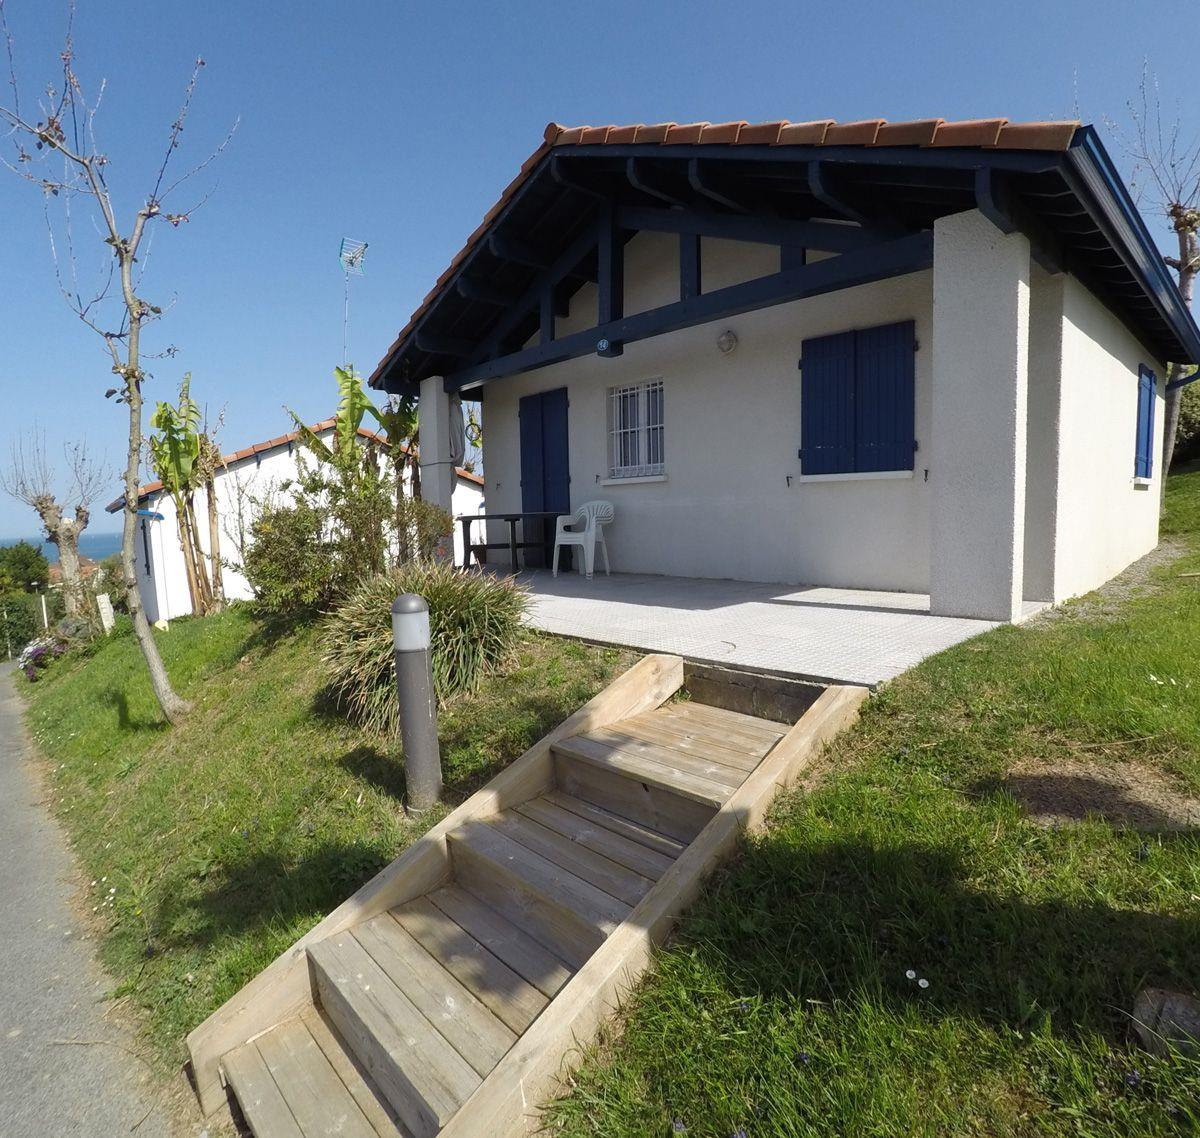 Chalet basco T3 (2 camere)